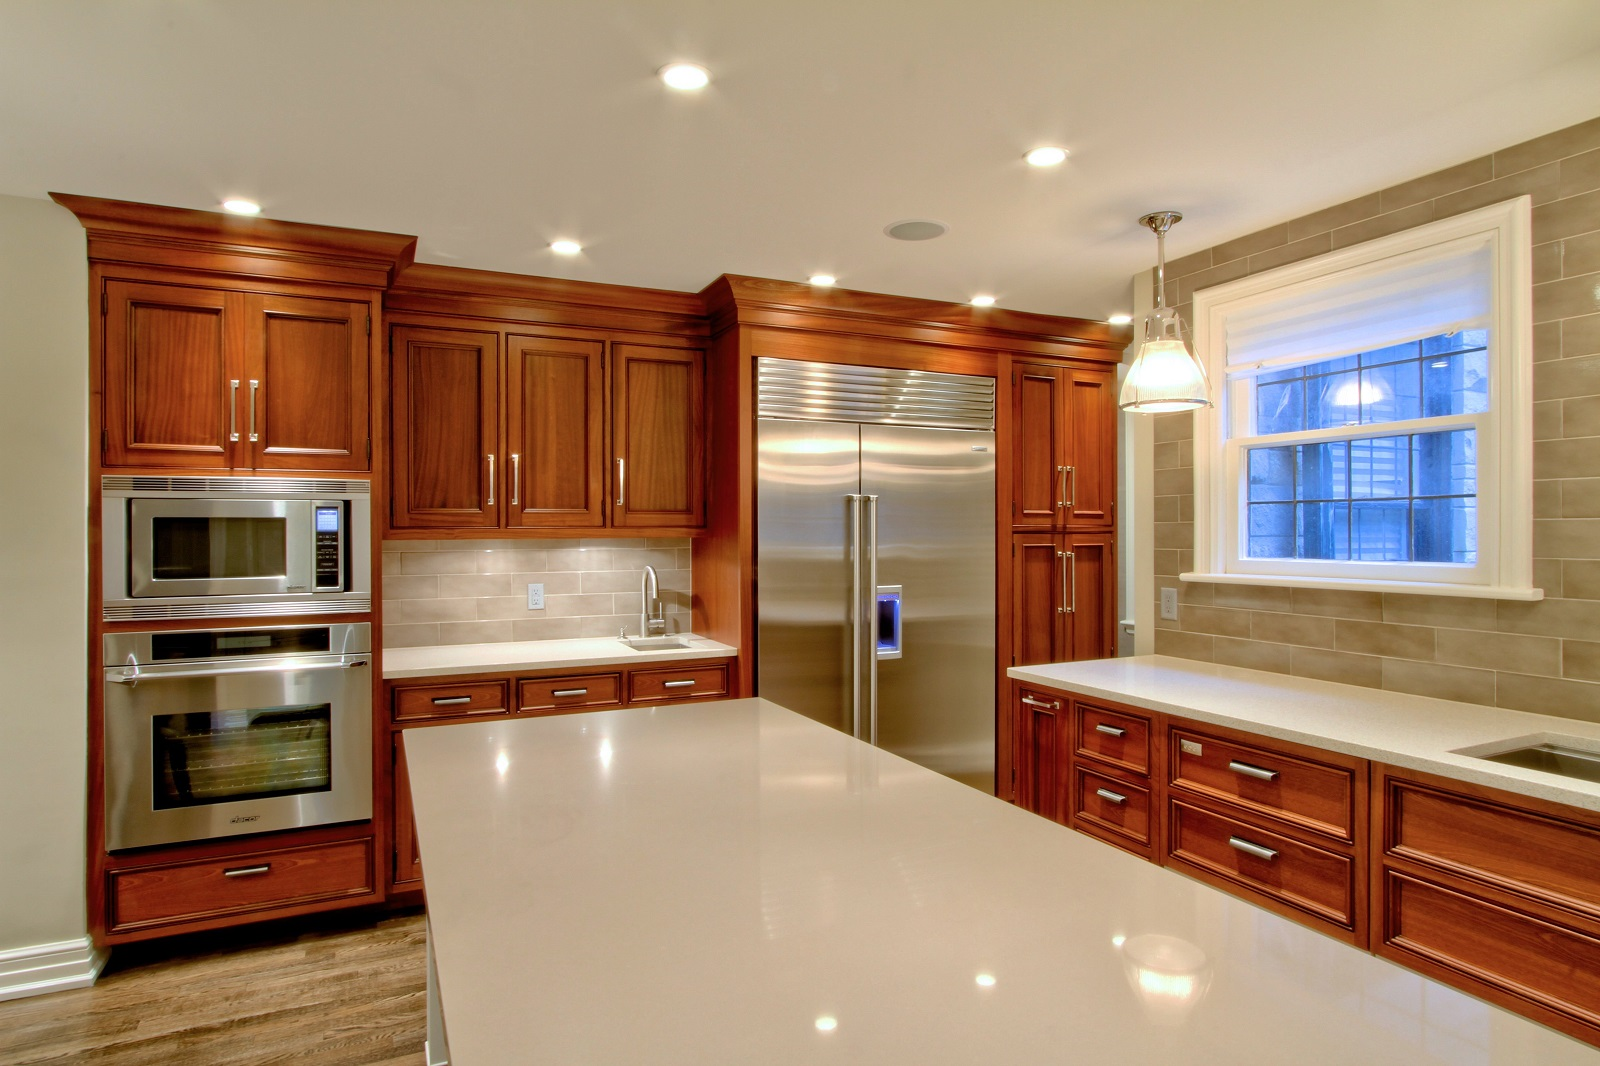 indianapolis kitchen remodeling and design kitchen remodeling companies Meridian Kessler Kitchen Remodel After